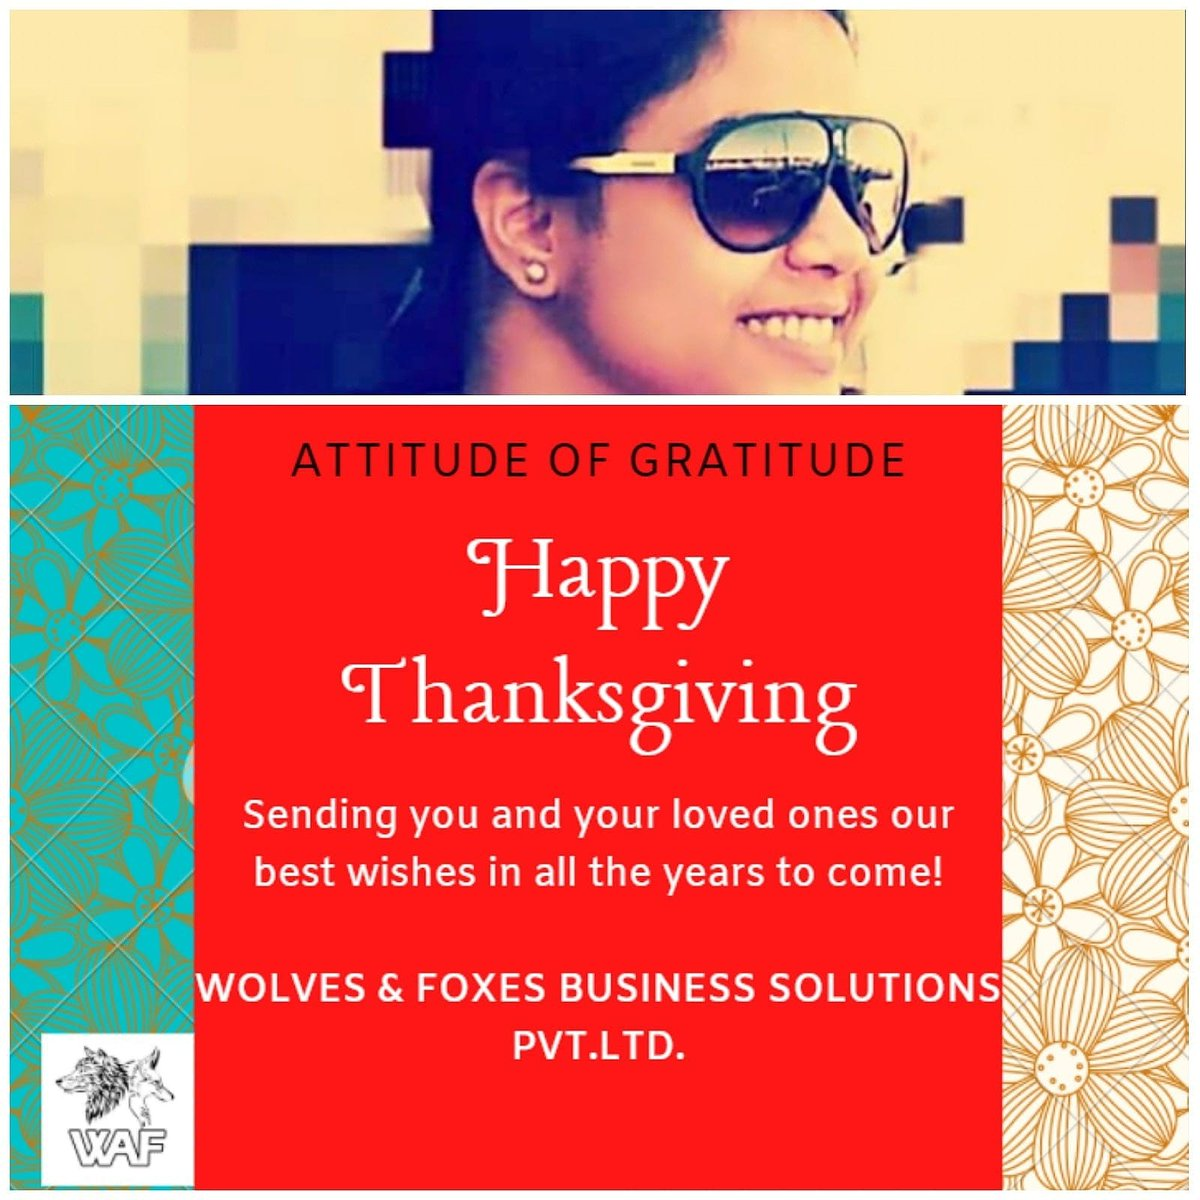 There is always always something to be grateful about. Happy Thanksgiving 🥰🥰🥰 #Thanksgiving #ThanksgivingEve #Thanksgiving2020 #ThankYouTaker #thankyouall #ThanksToYou #lotsoflove #wolvesandfoxes #india #coimbatore